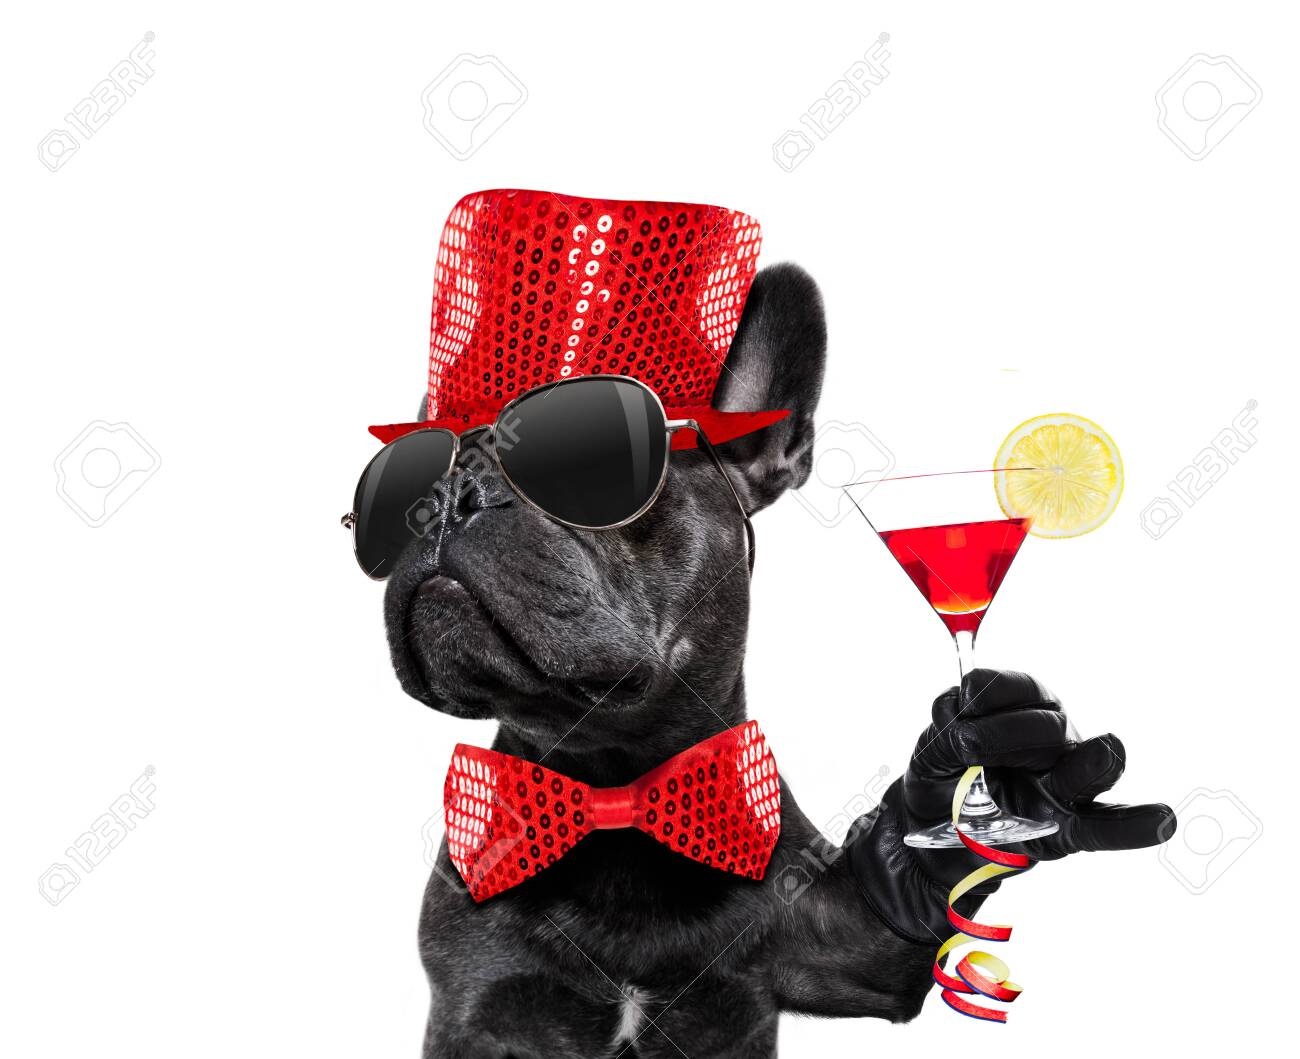 Dog celebrating new years eve with champagne isolated on white - 137047915